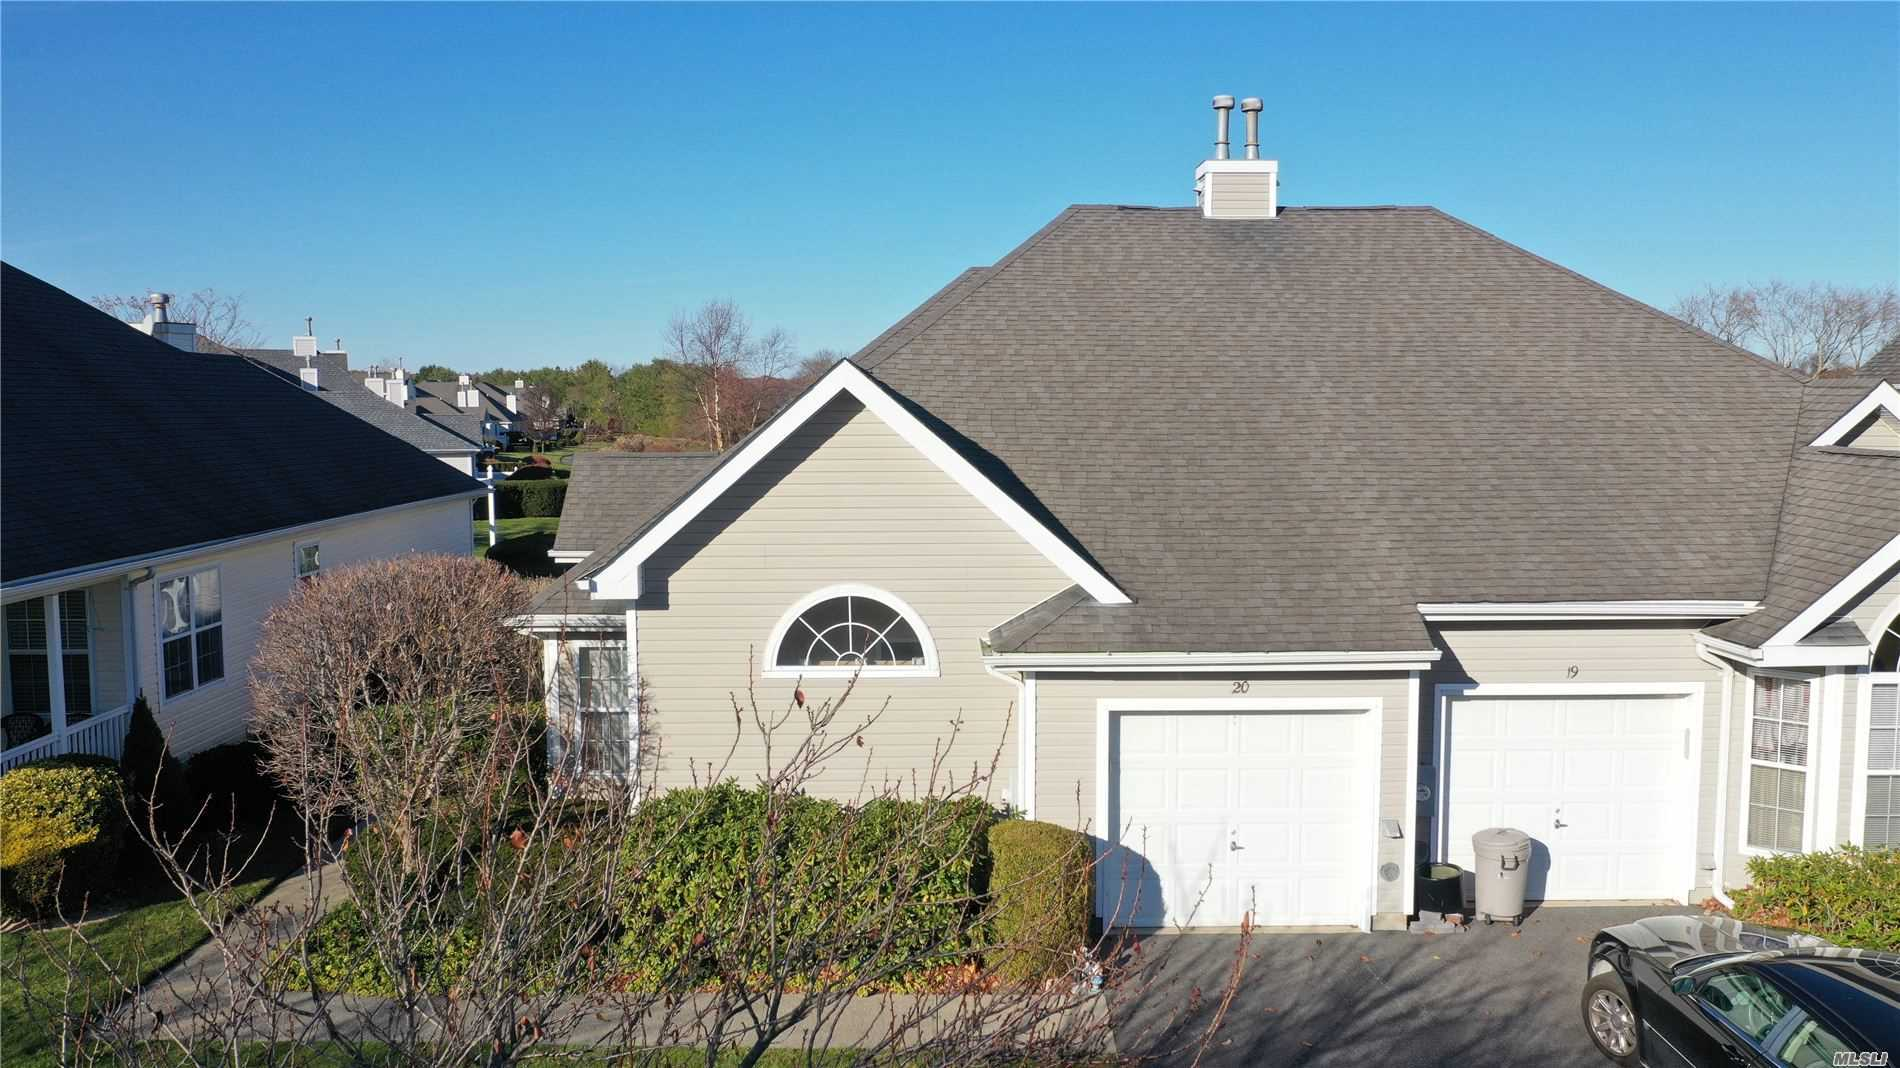 20 Lakeview Ct - Riverhead, New York